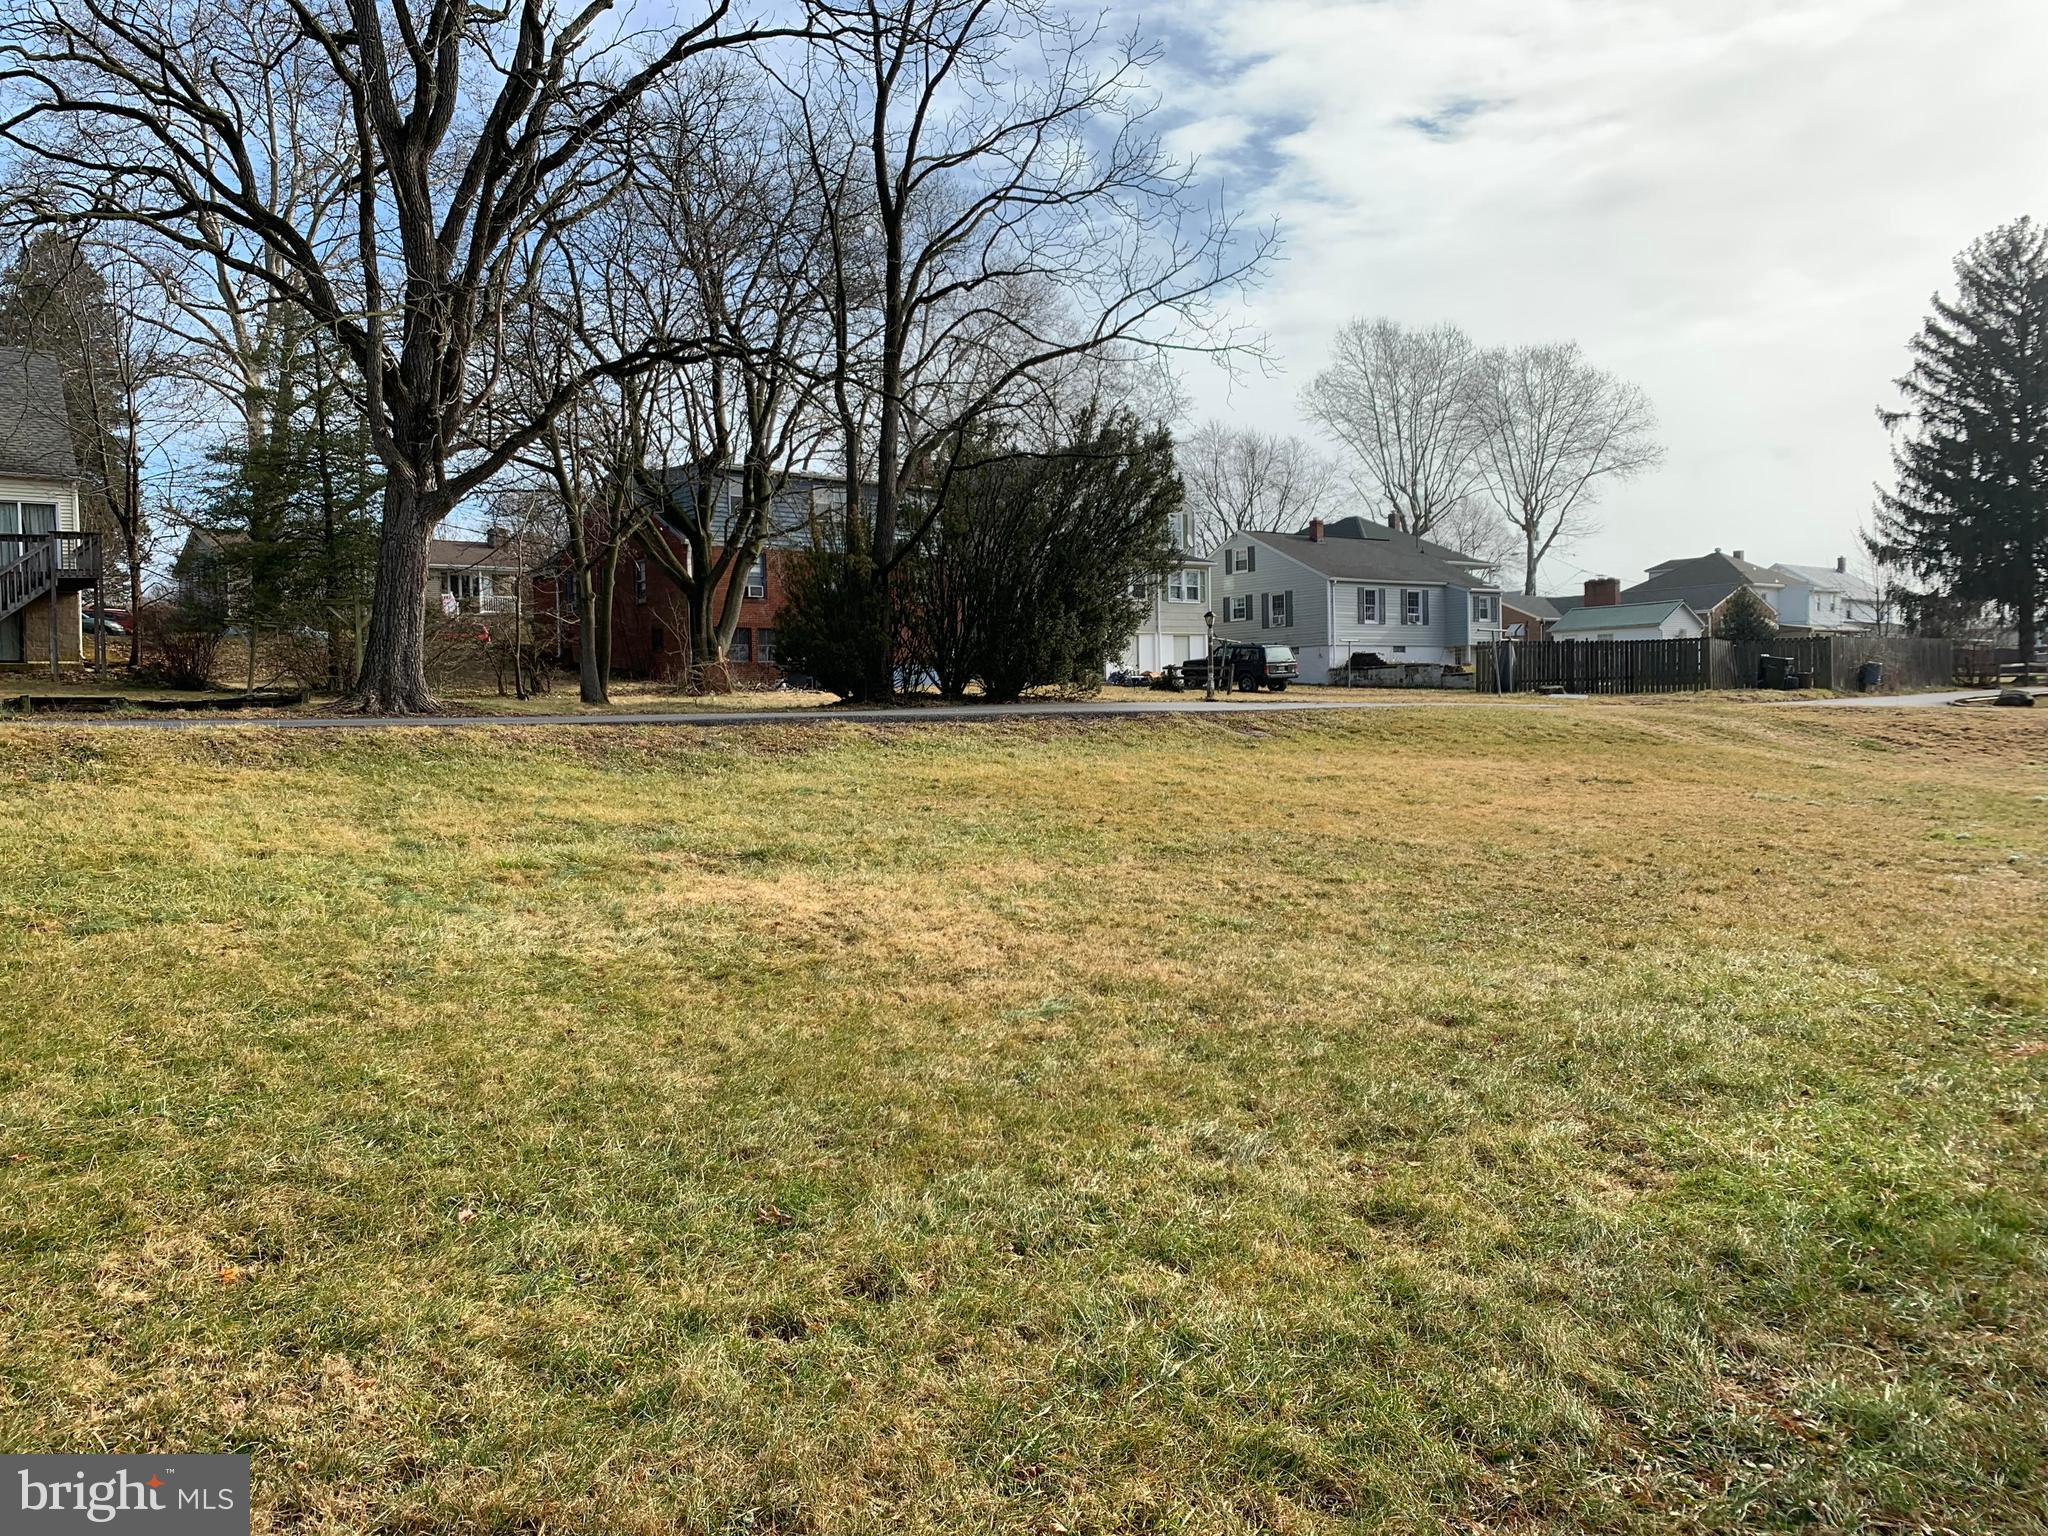 *Welcome to this ready to build rarely available city lot in established neighborhood*Cleared corner lot with road frontage and ready access to utilities*Should be available for public water and sewer per local engineering firm consultation*